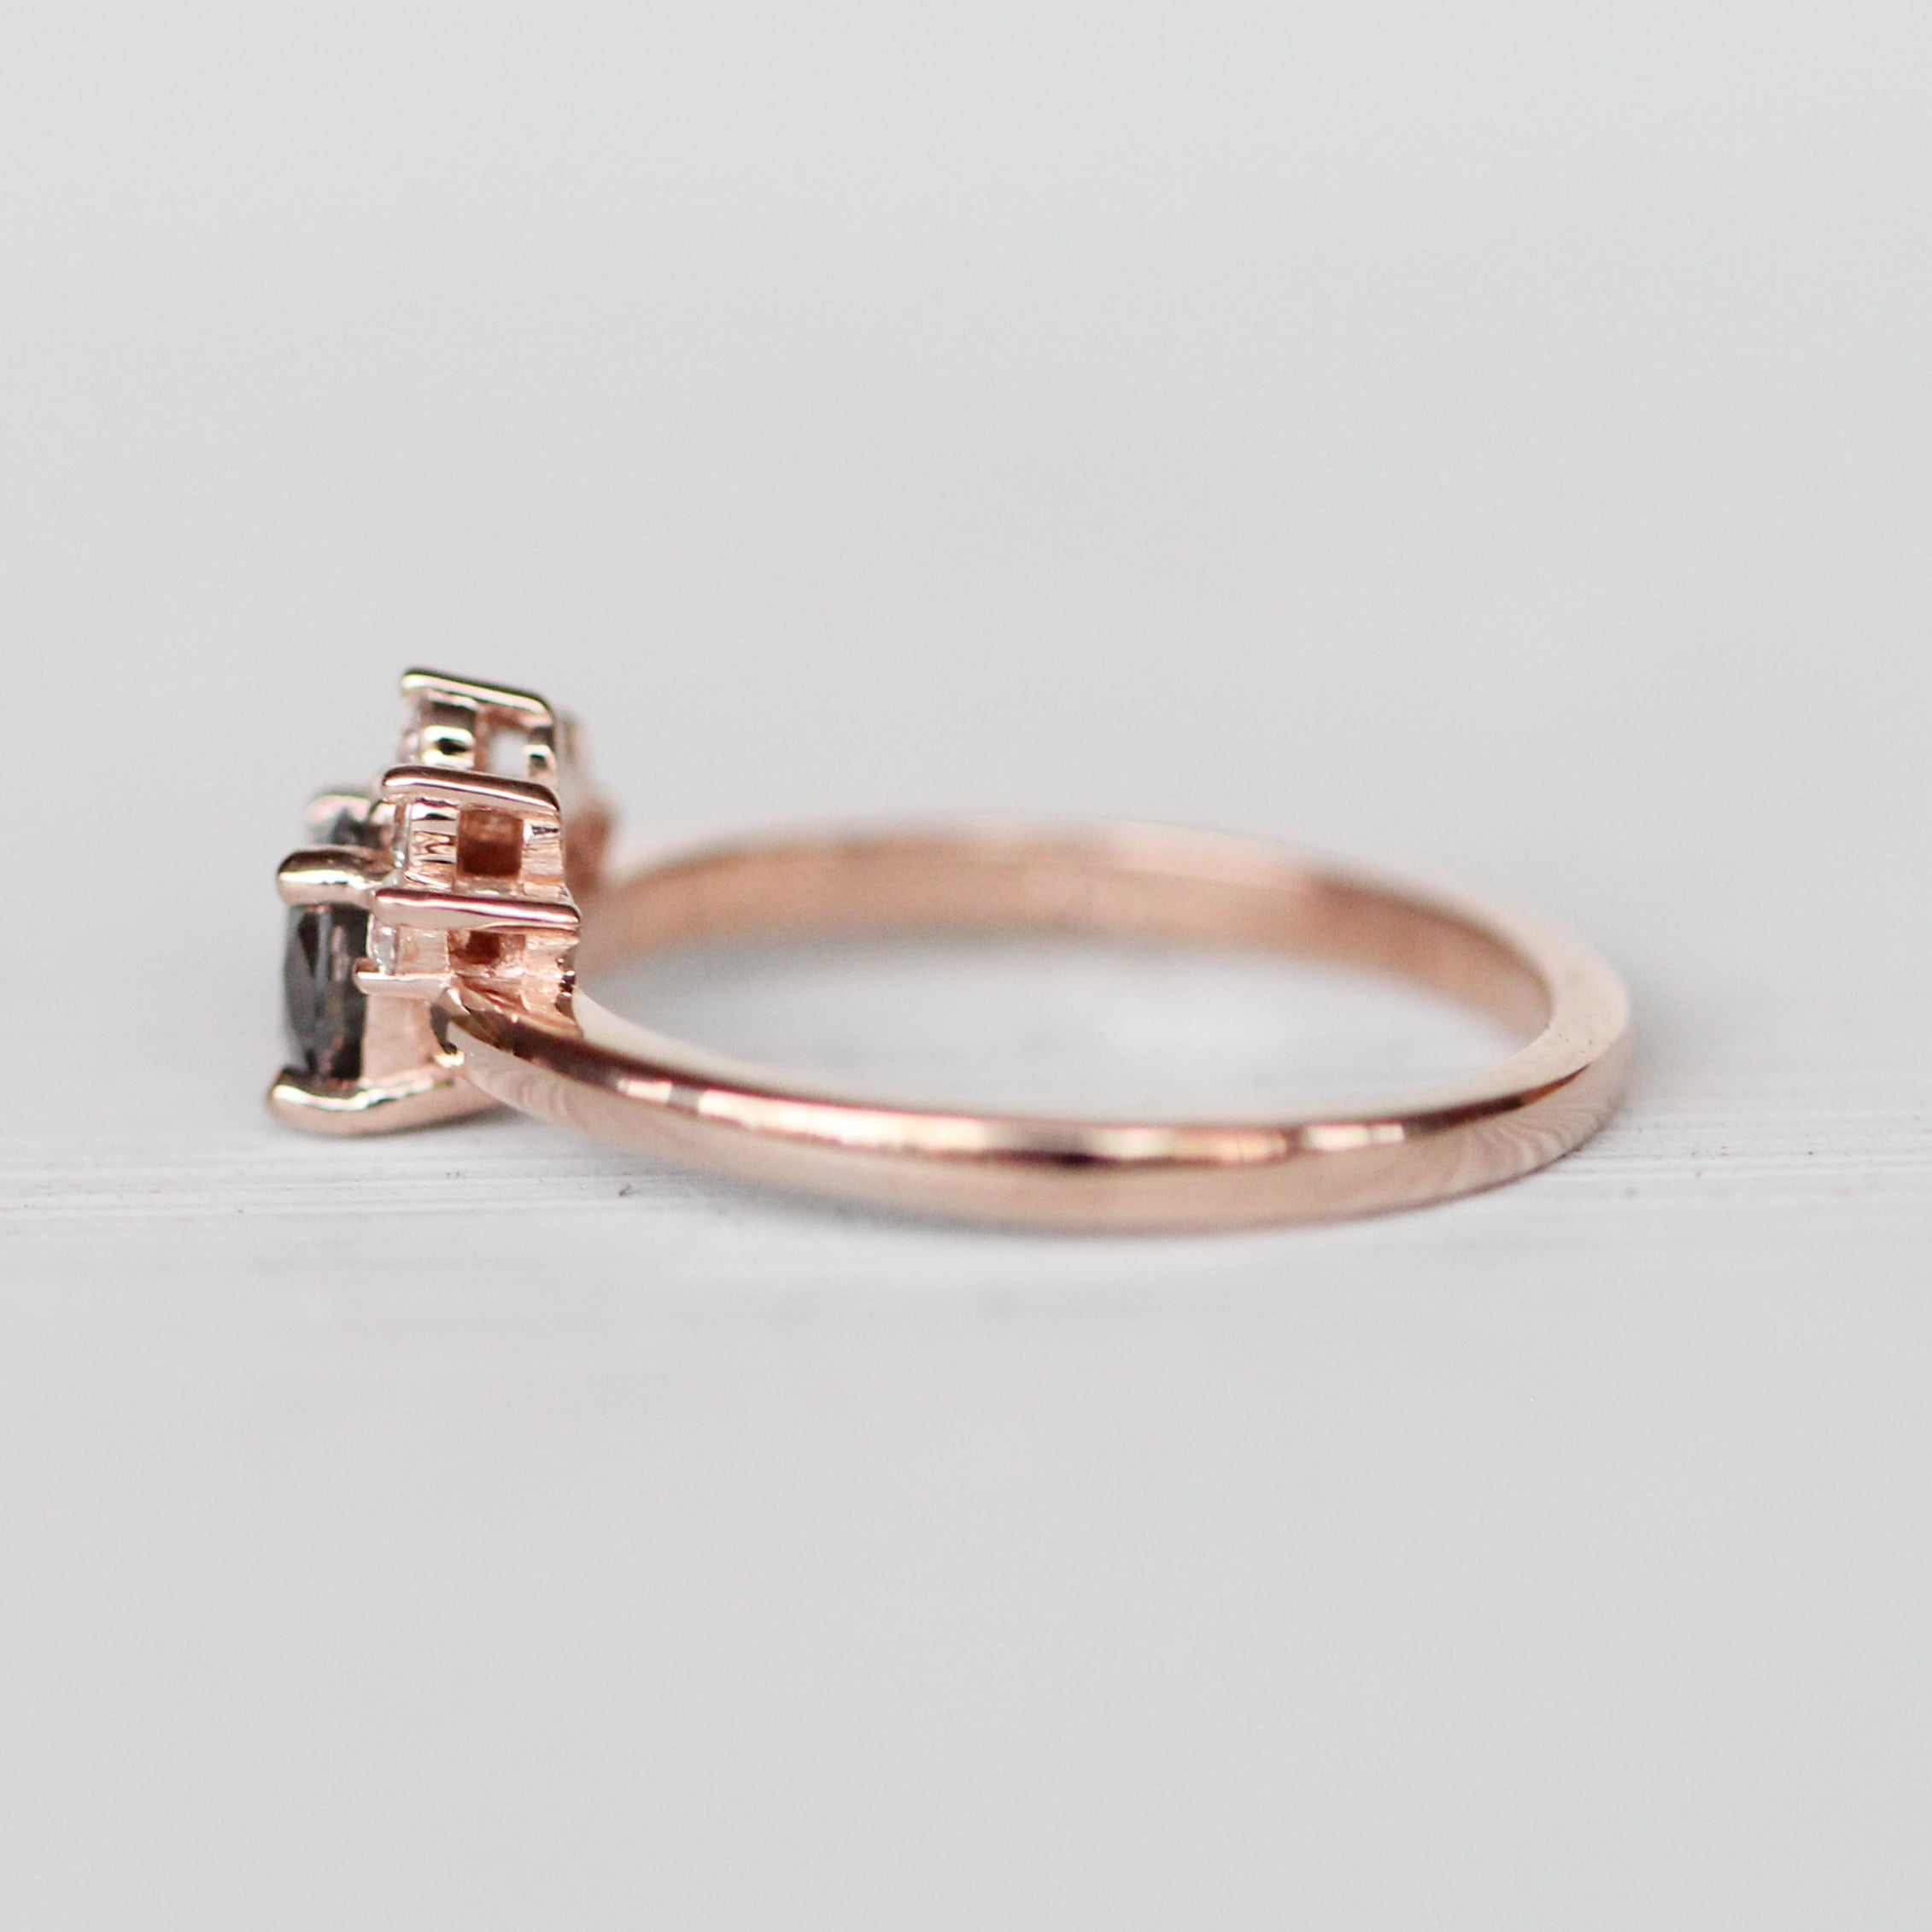 Blythe Ring with .60ct Celestial Diamond® in 10k Rose Gold - Ready to Size and Ship - Celestial Diamonds ® by Midwinter Co.